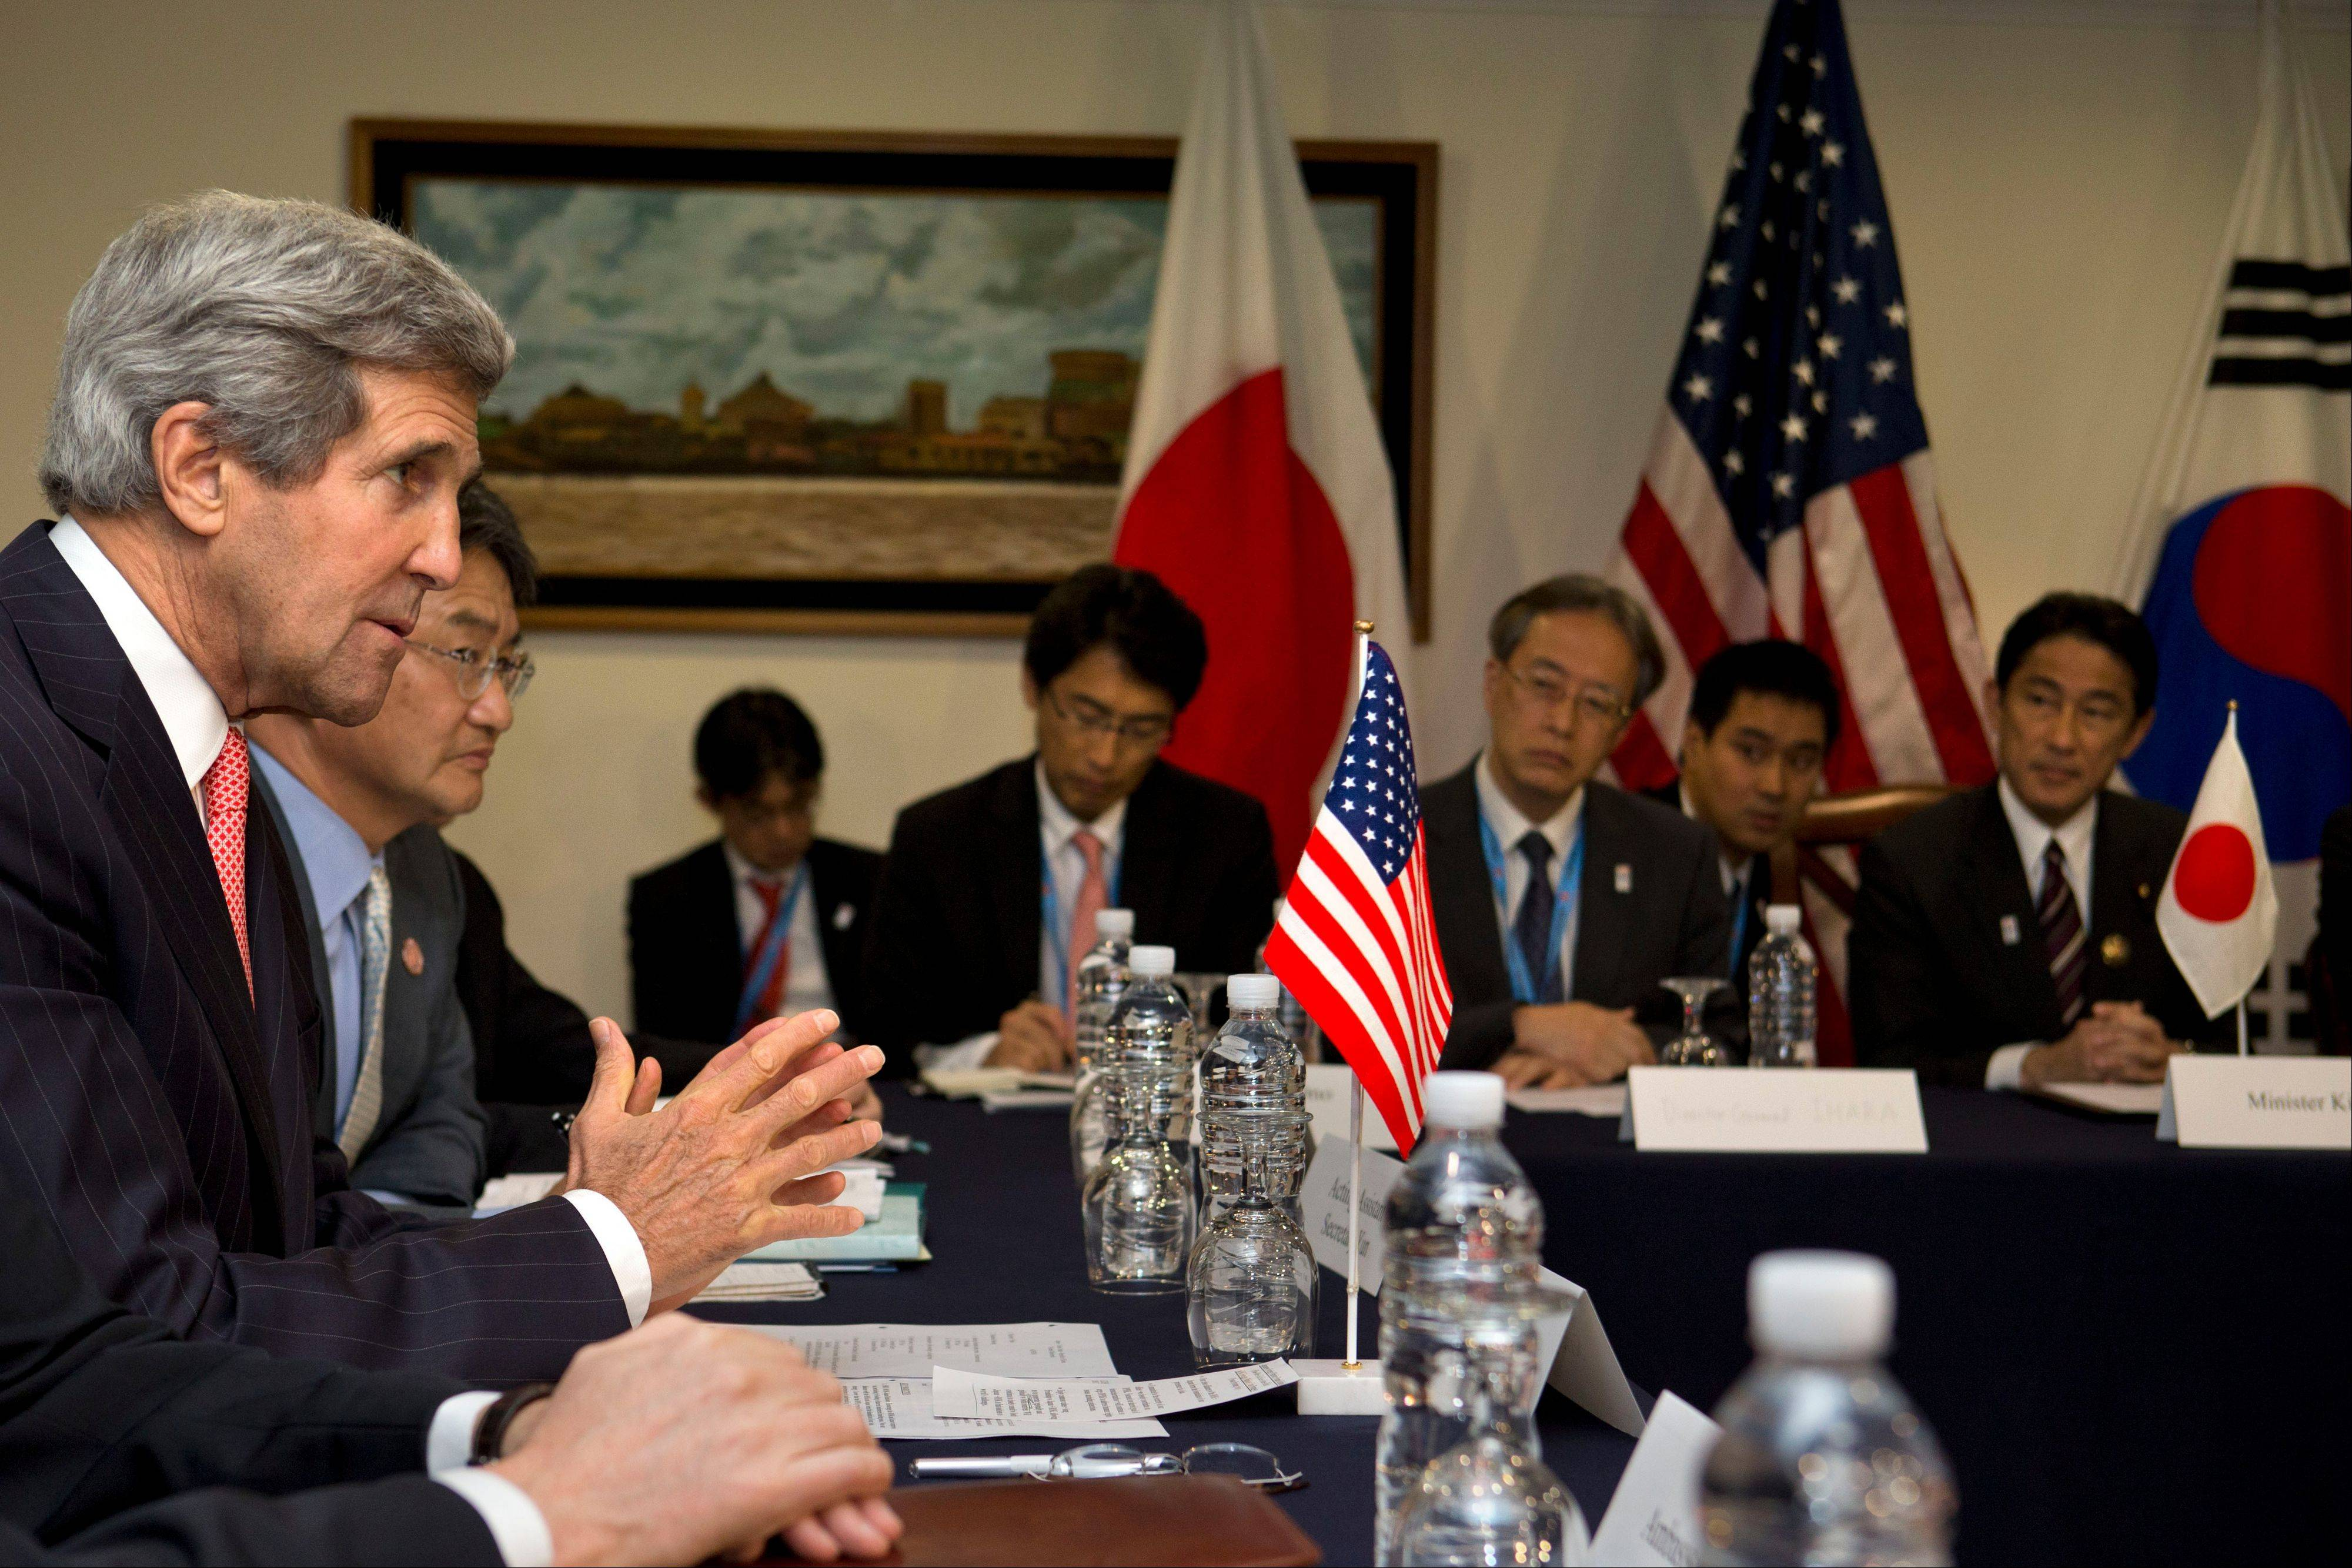 U.S. Secretary of State John Kerry, left, speaks during a meeting with Japan and South Korea during the ASEAN meetings in Bandar Seri Begawan, Brunei, on Monday.